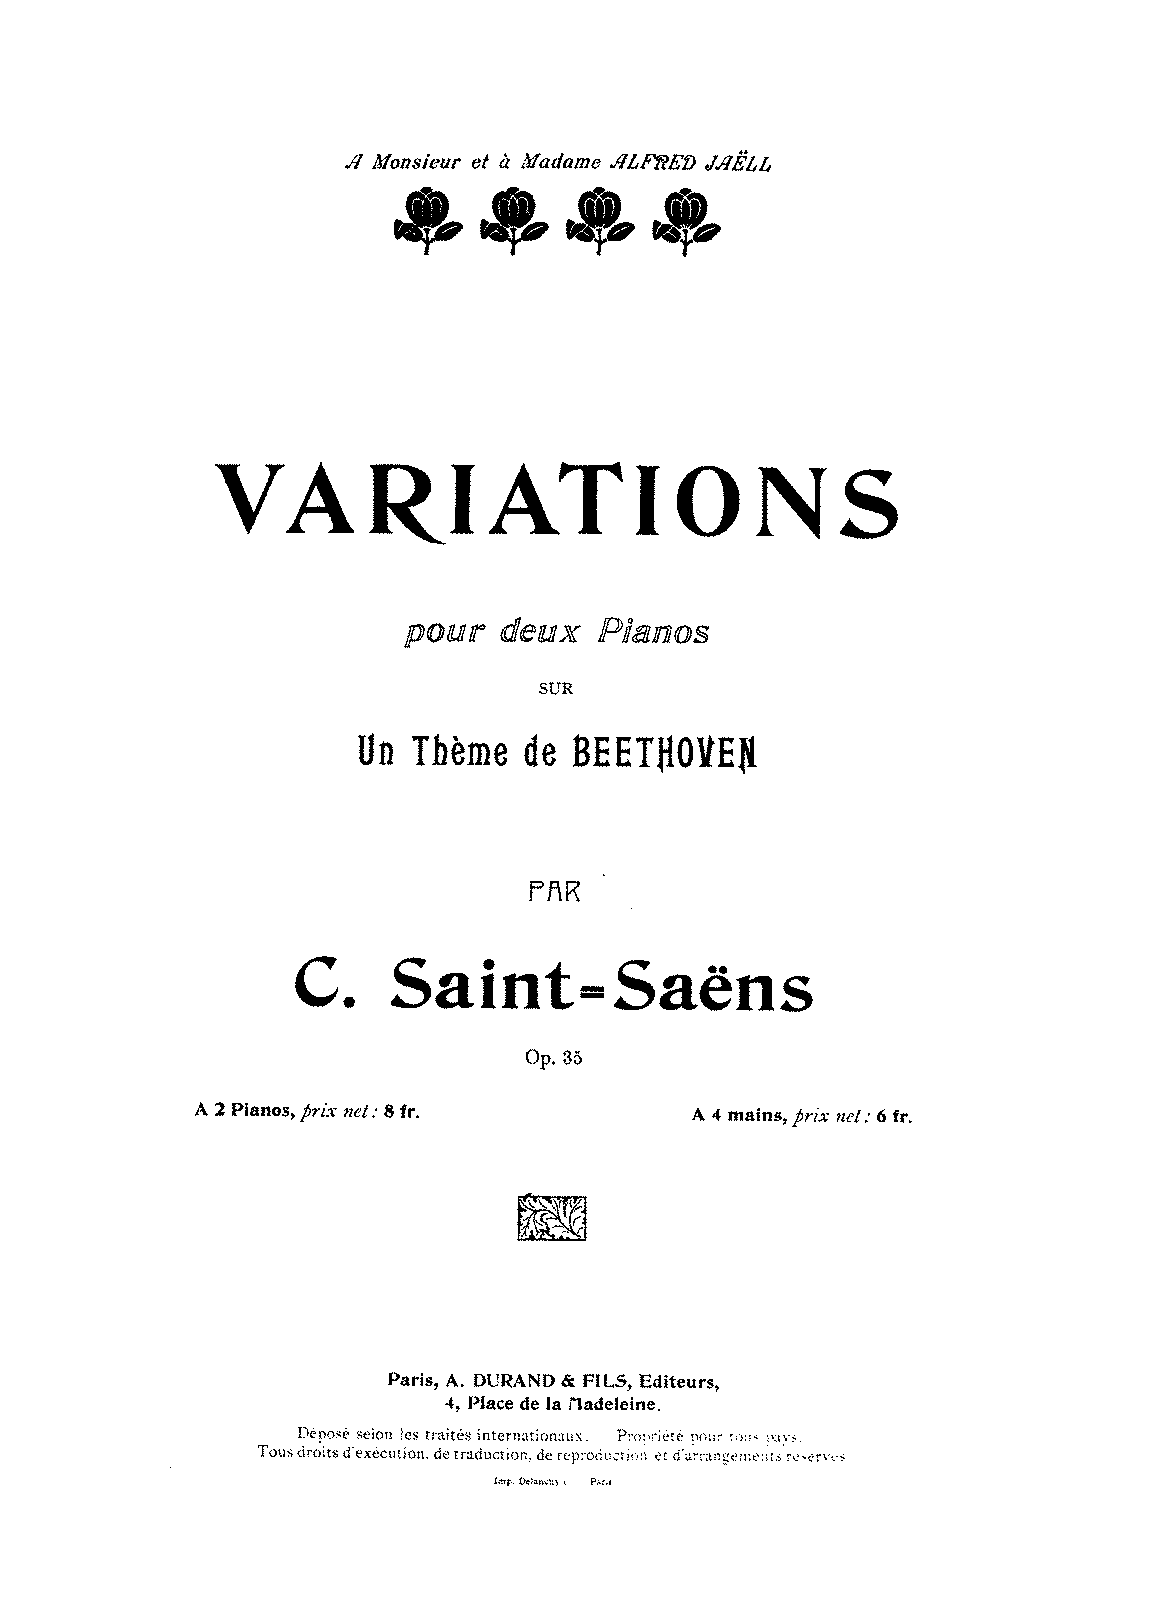 PMLP17898-Saint-Saens Variations Beethoven op35 piano 4 hands.pdf